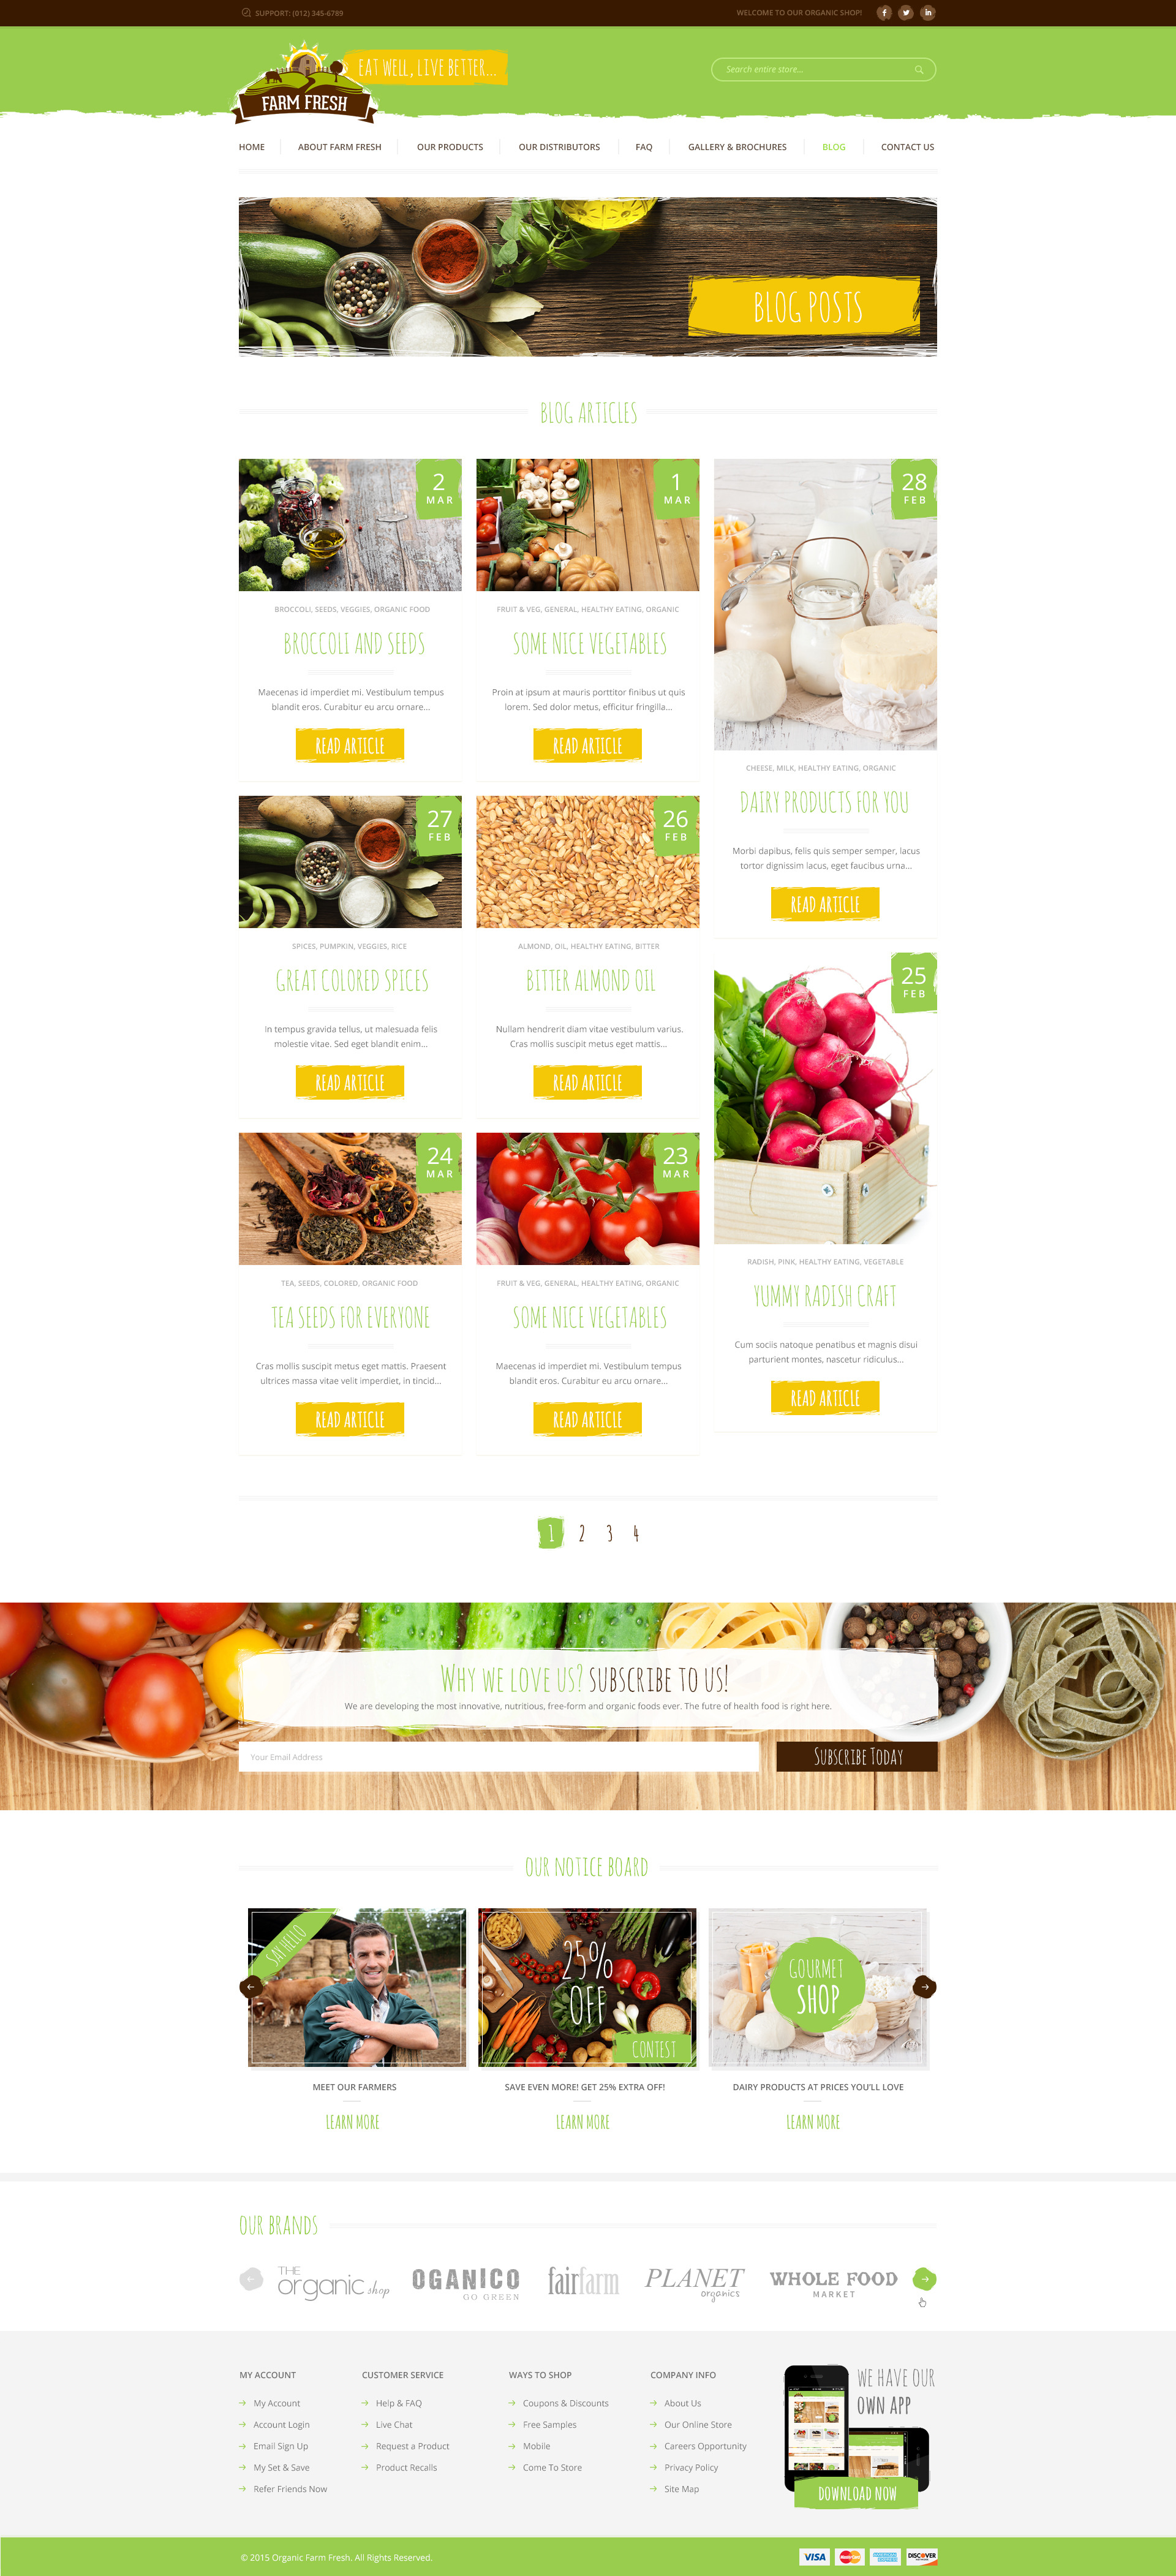 farm fresh organic products html template by themeplayers farm fresh organic products html template